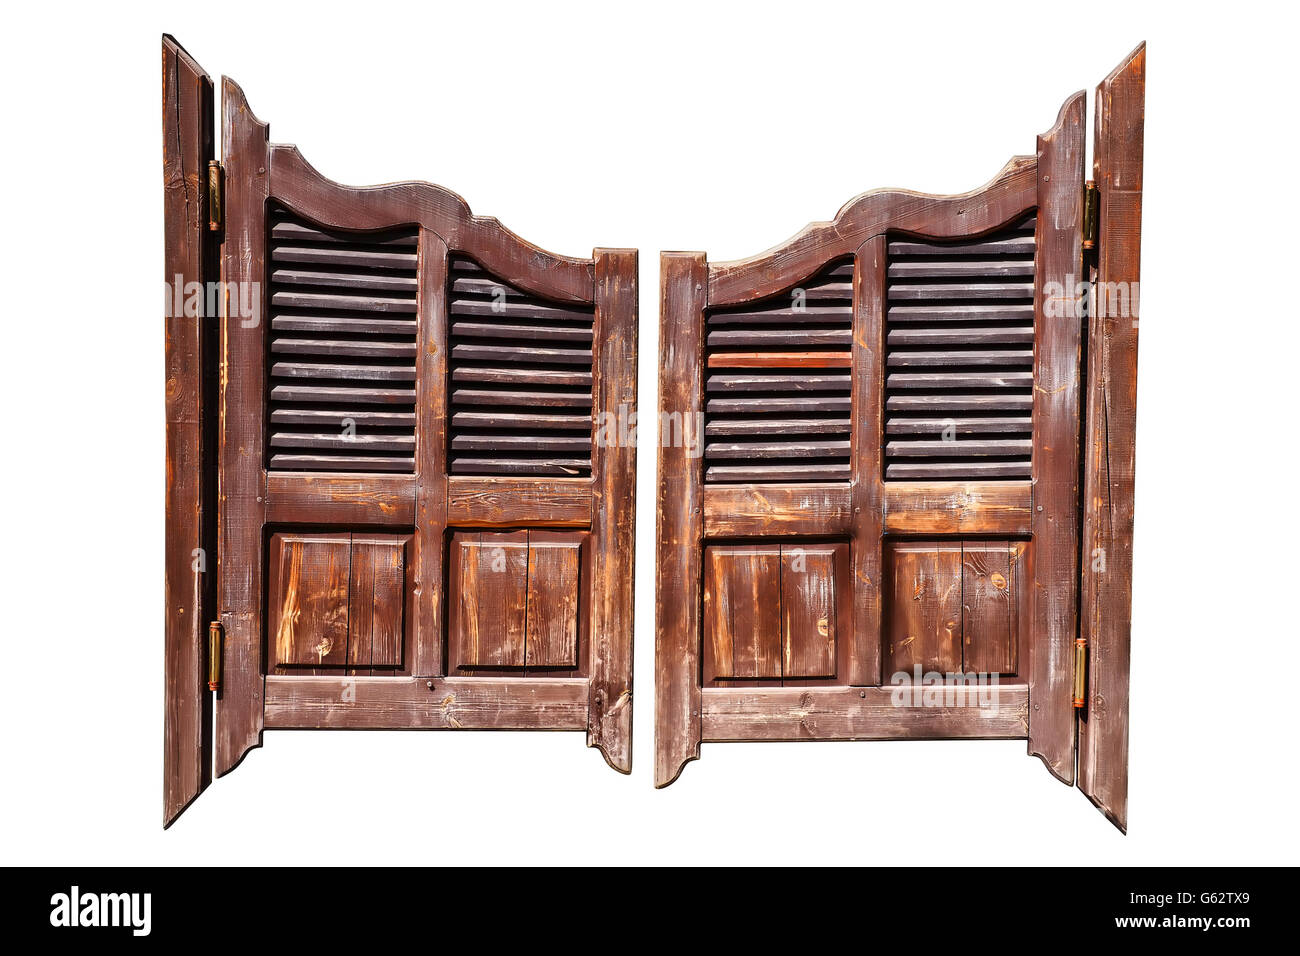 Old rough wooden saloon doors isolated on white with clipping path - Stock  Image - Saloon Doors Stock Photos & Saloon Doors Stock Images - Alamy